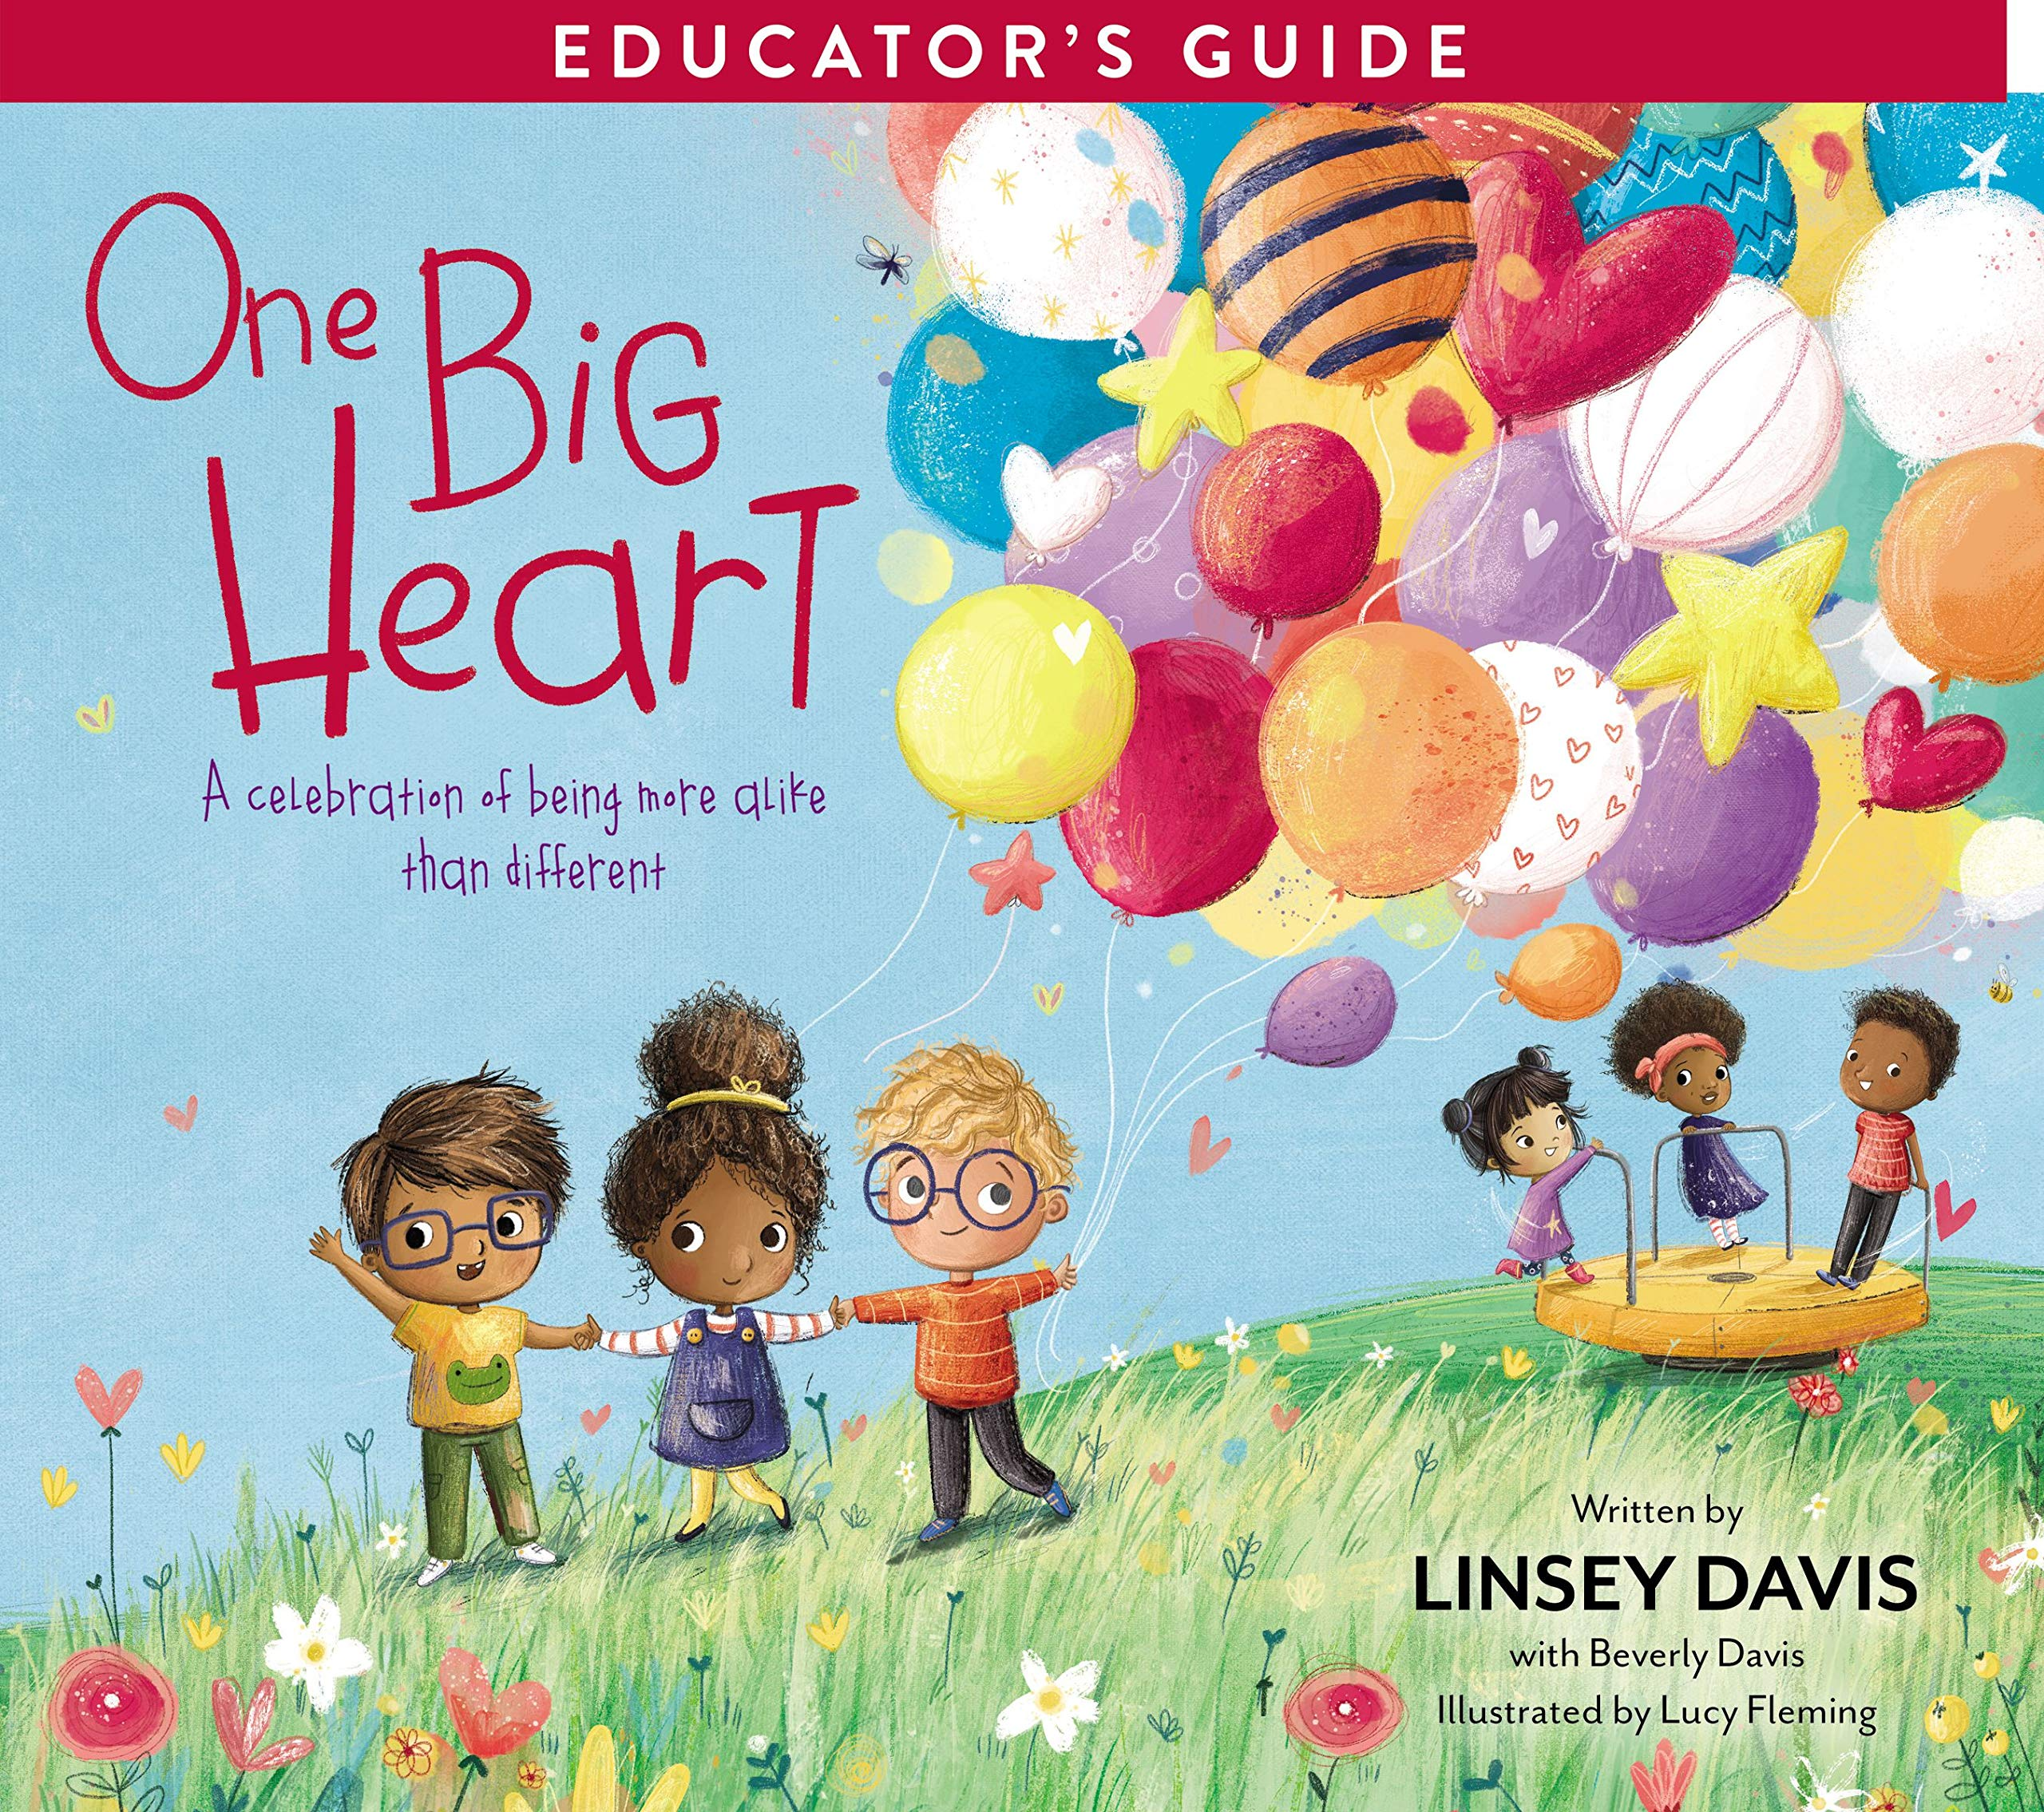 One Big Heart Activity Kit: A Celebration of Being More Alike than Different